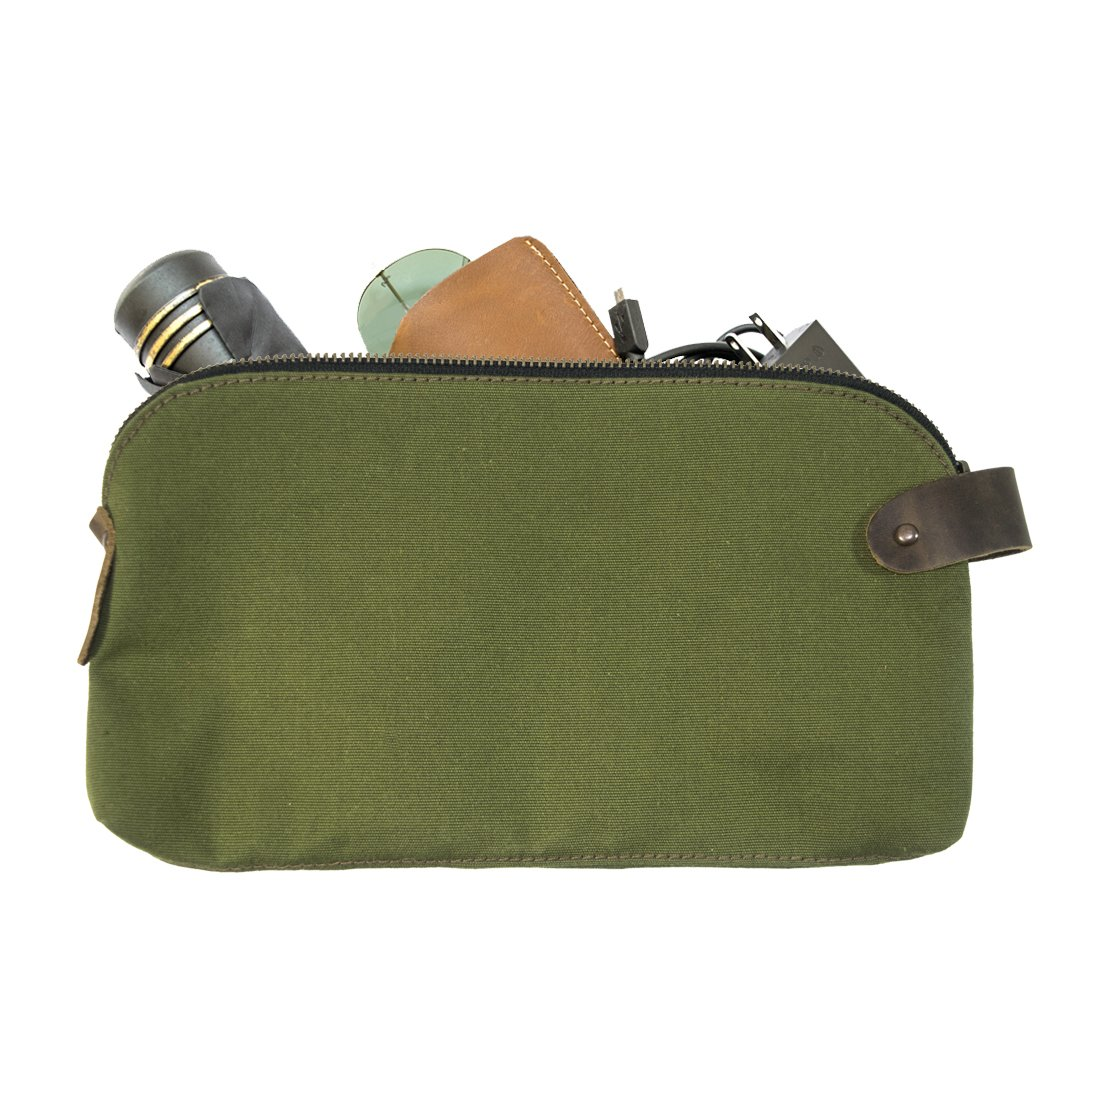 Water Resistant Canvas Large All Purpose Dopp Kit Utility Bag (Cords, Chargers, Tools, School / Office Supplies) Handmade by Hide & Drink :: Olive by Hide & Drink (Image #1)